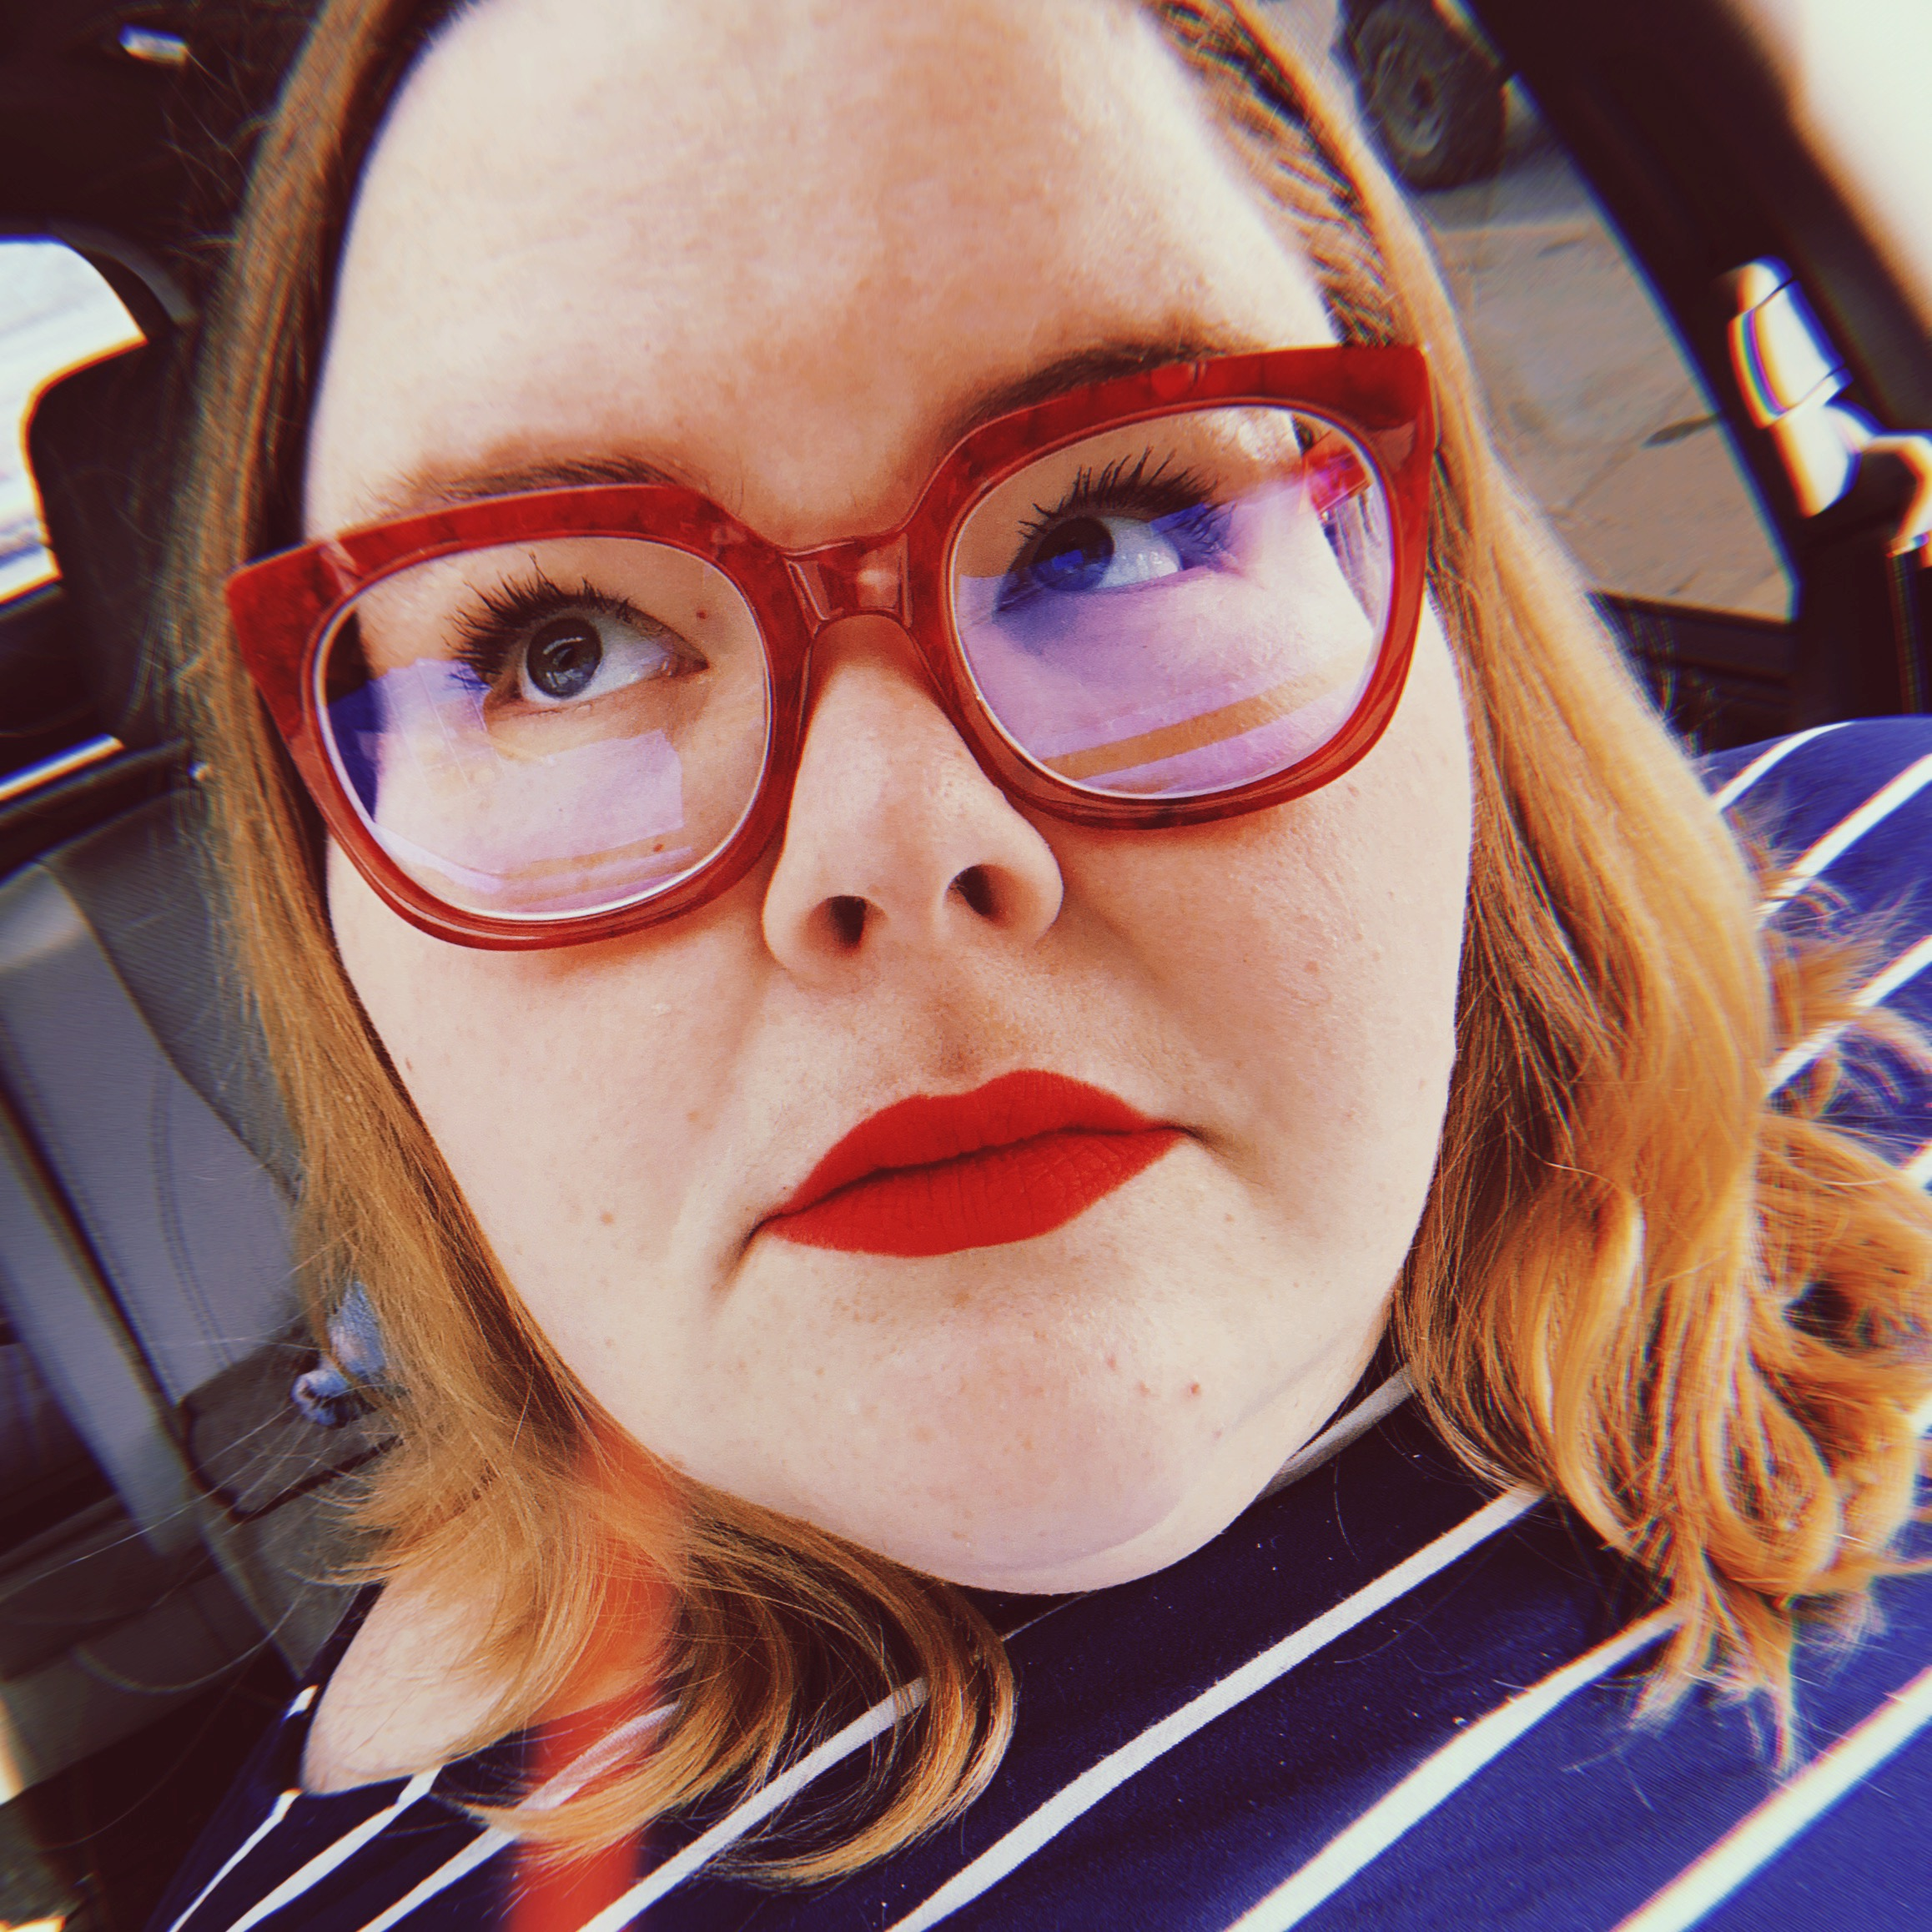 a fat white person wearing large thick-rimmed red glasses and red lipstick